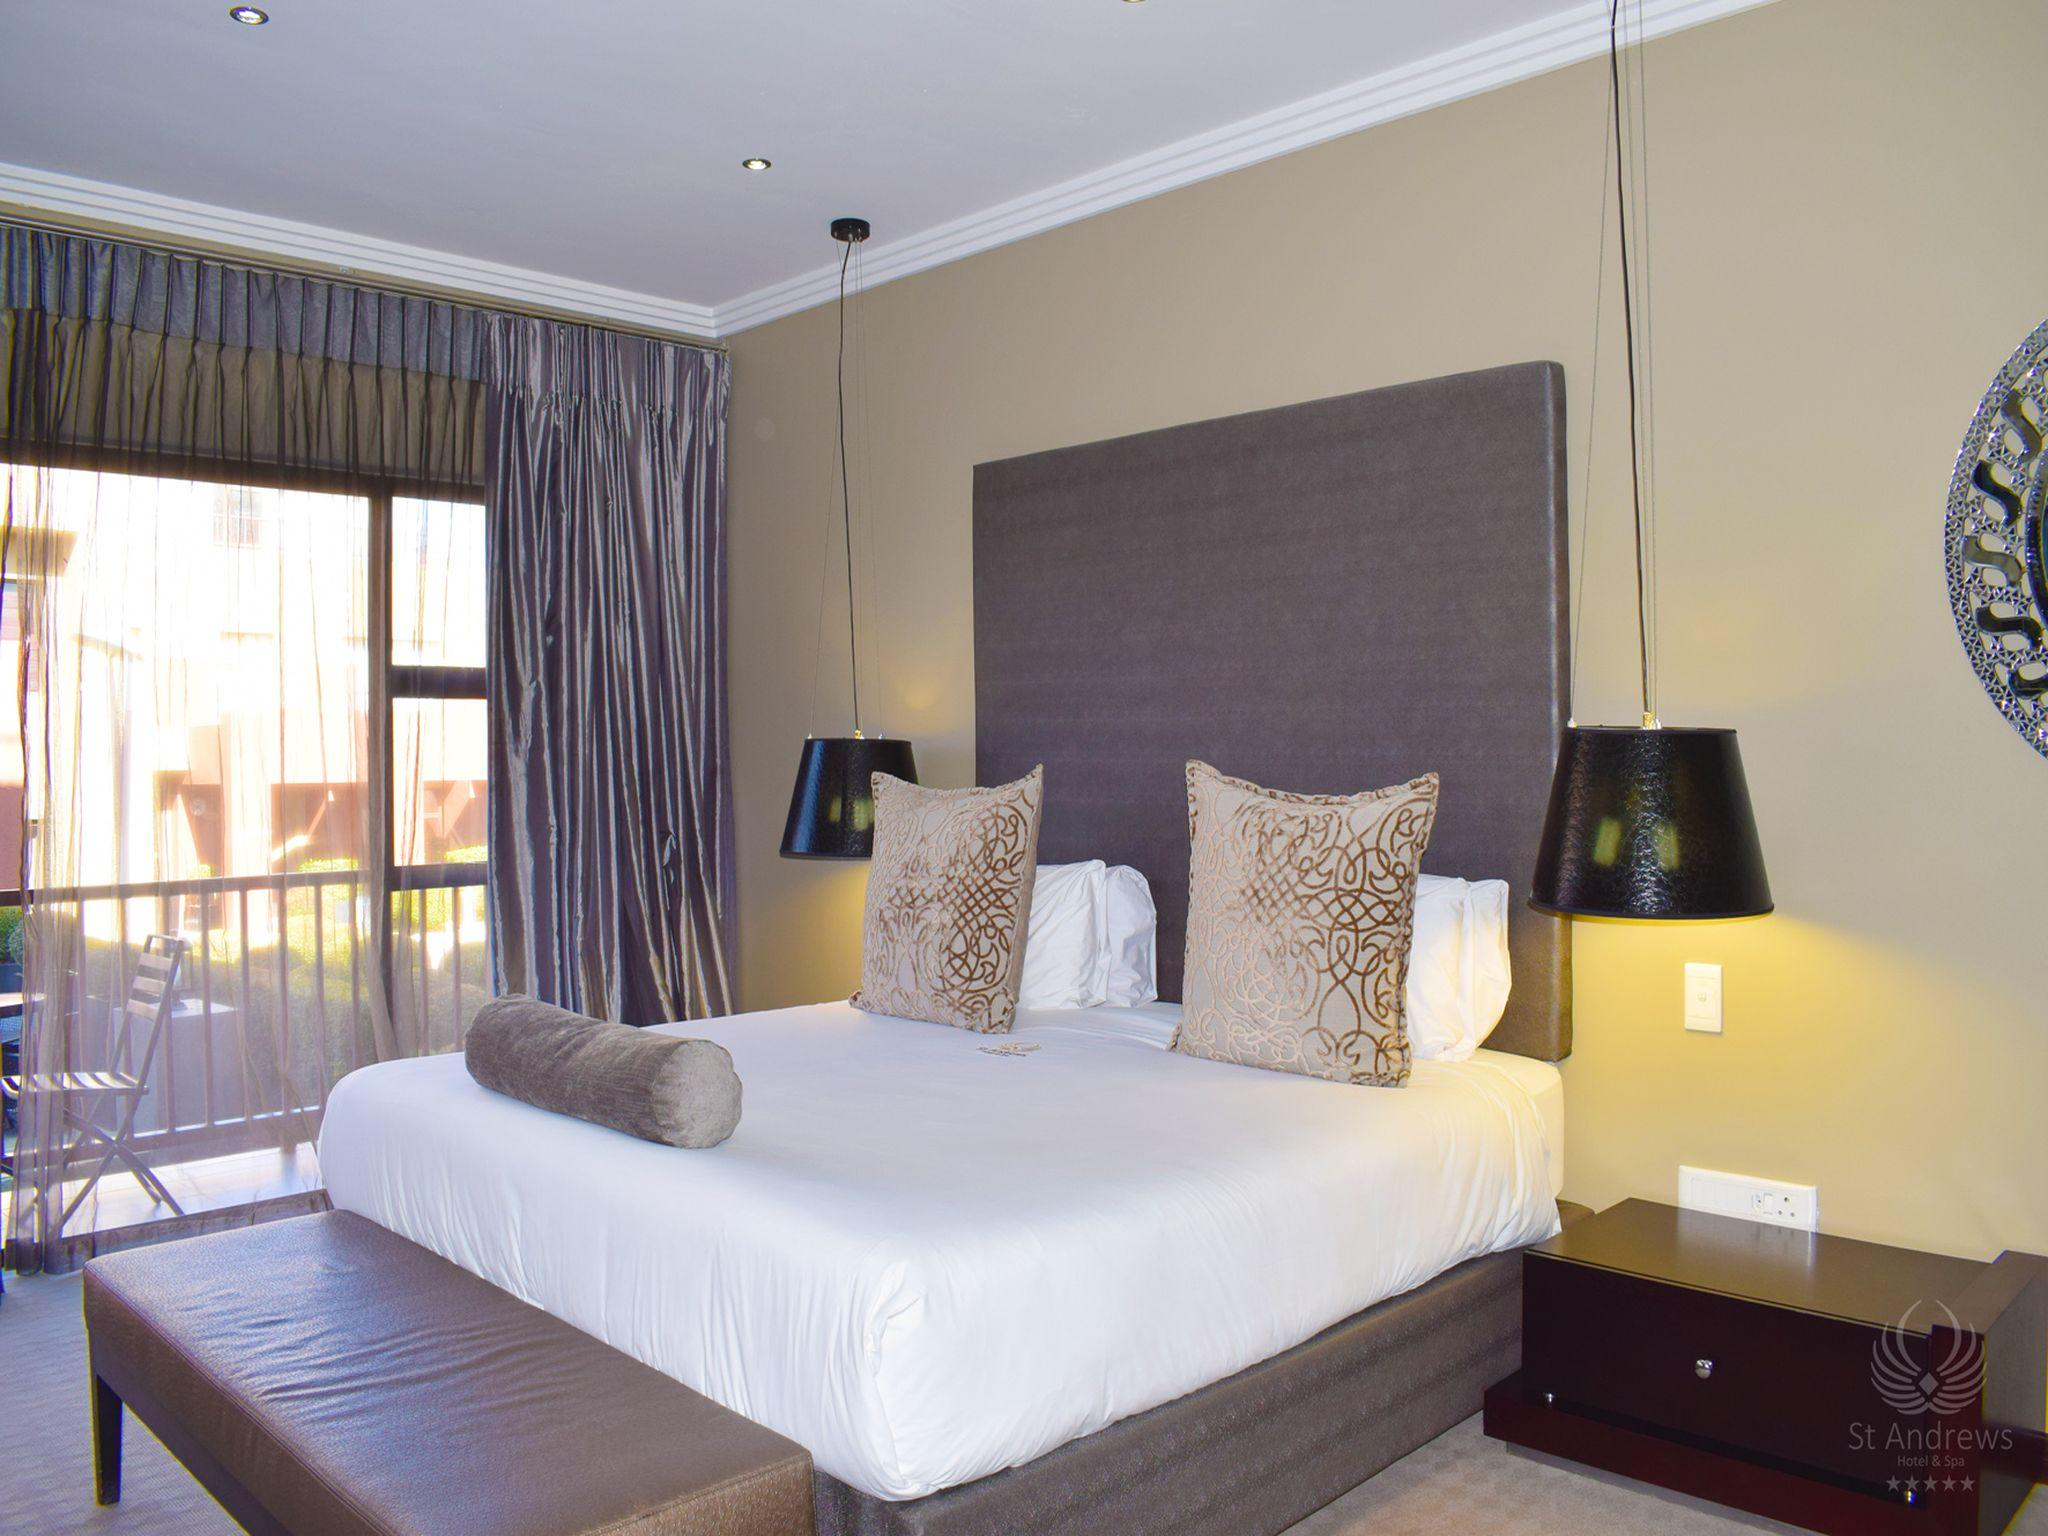 St Andrews Hotel and Spa, Ekurhuleni